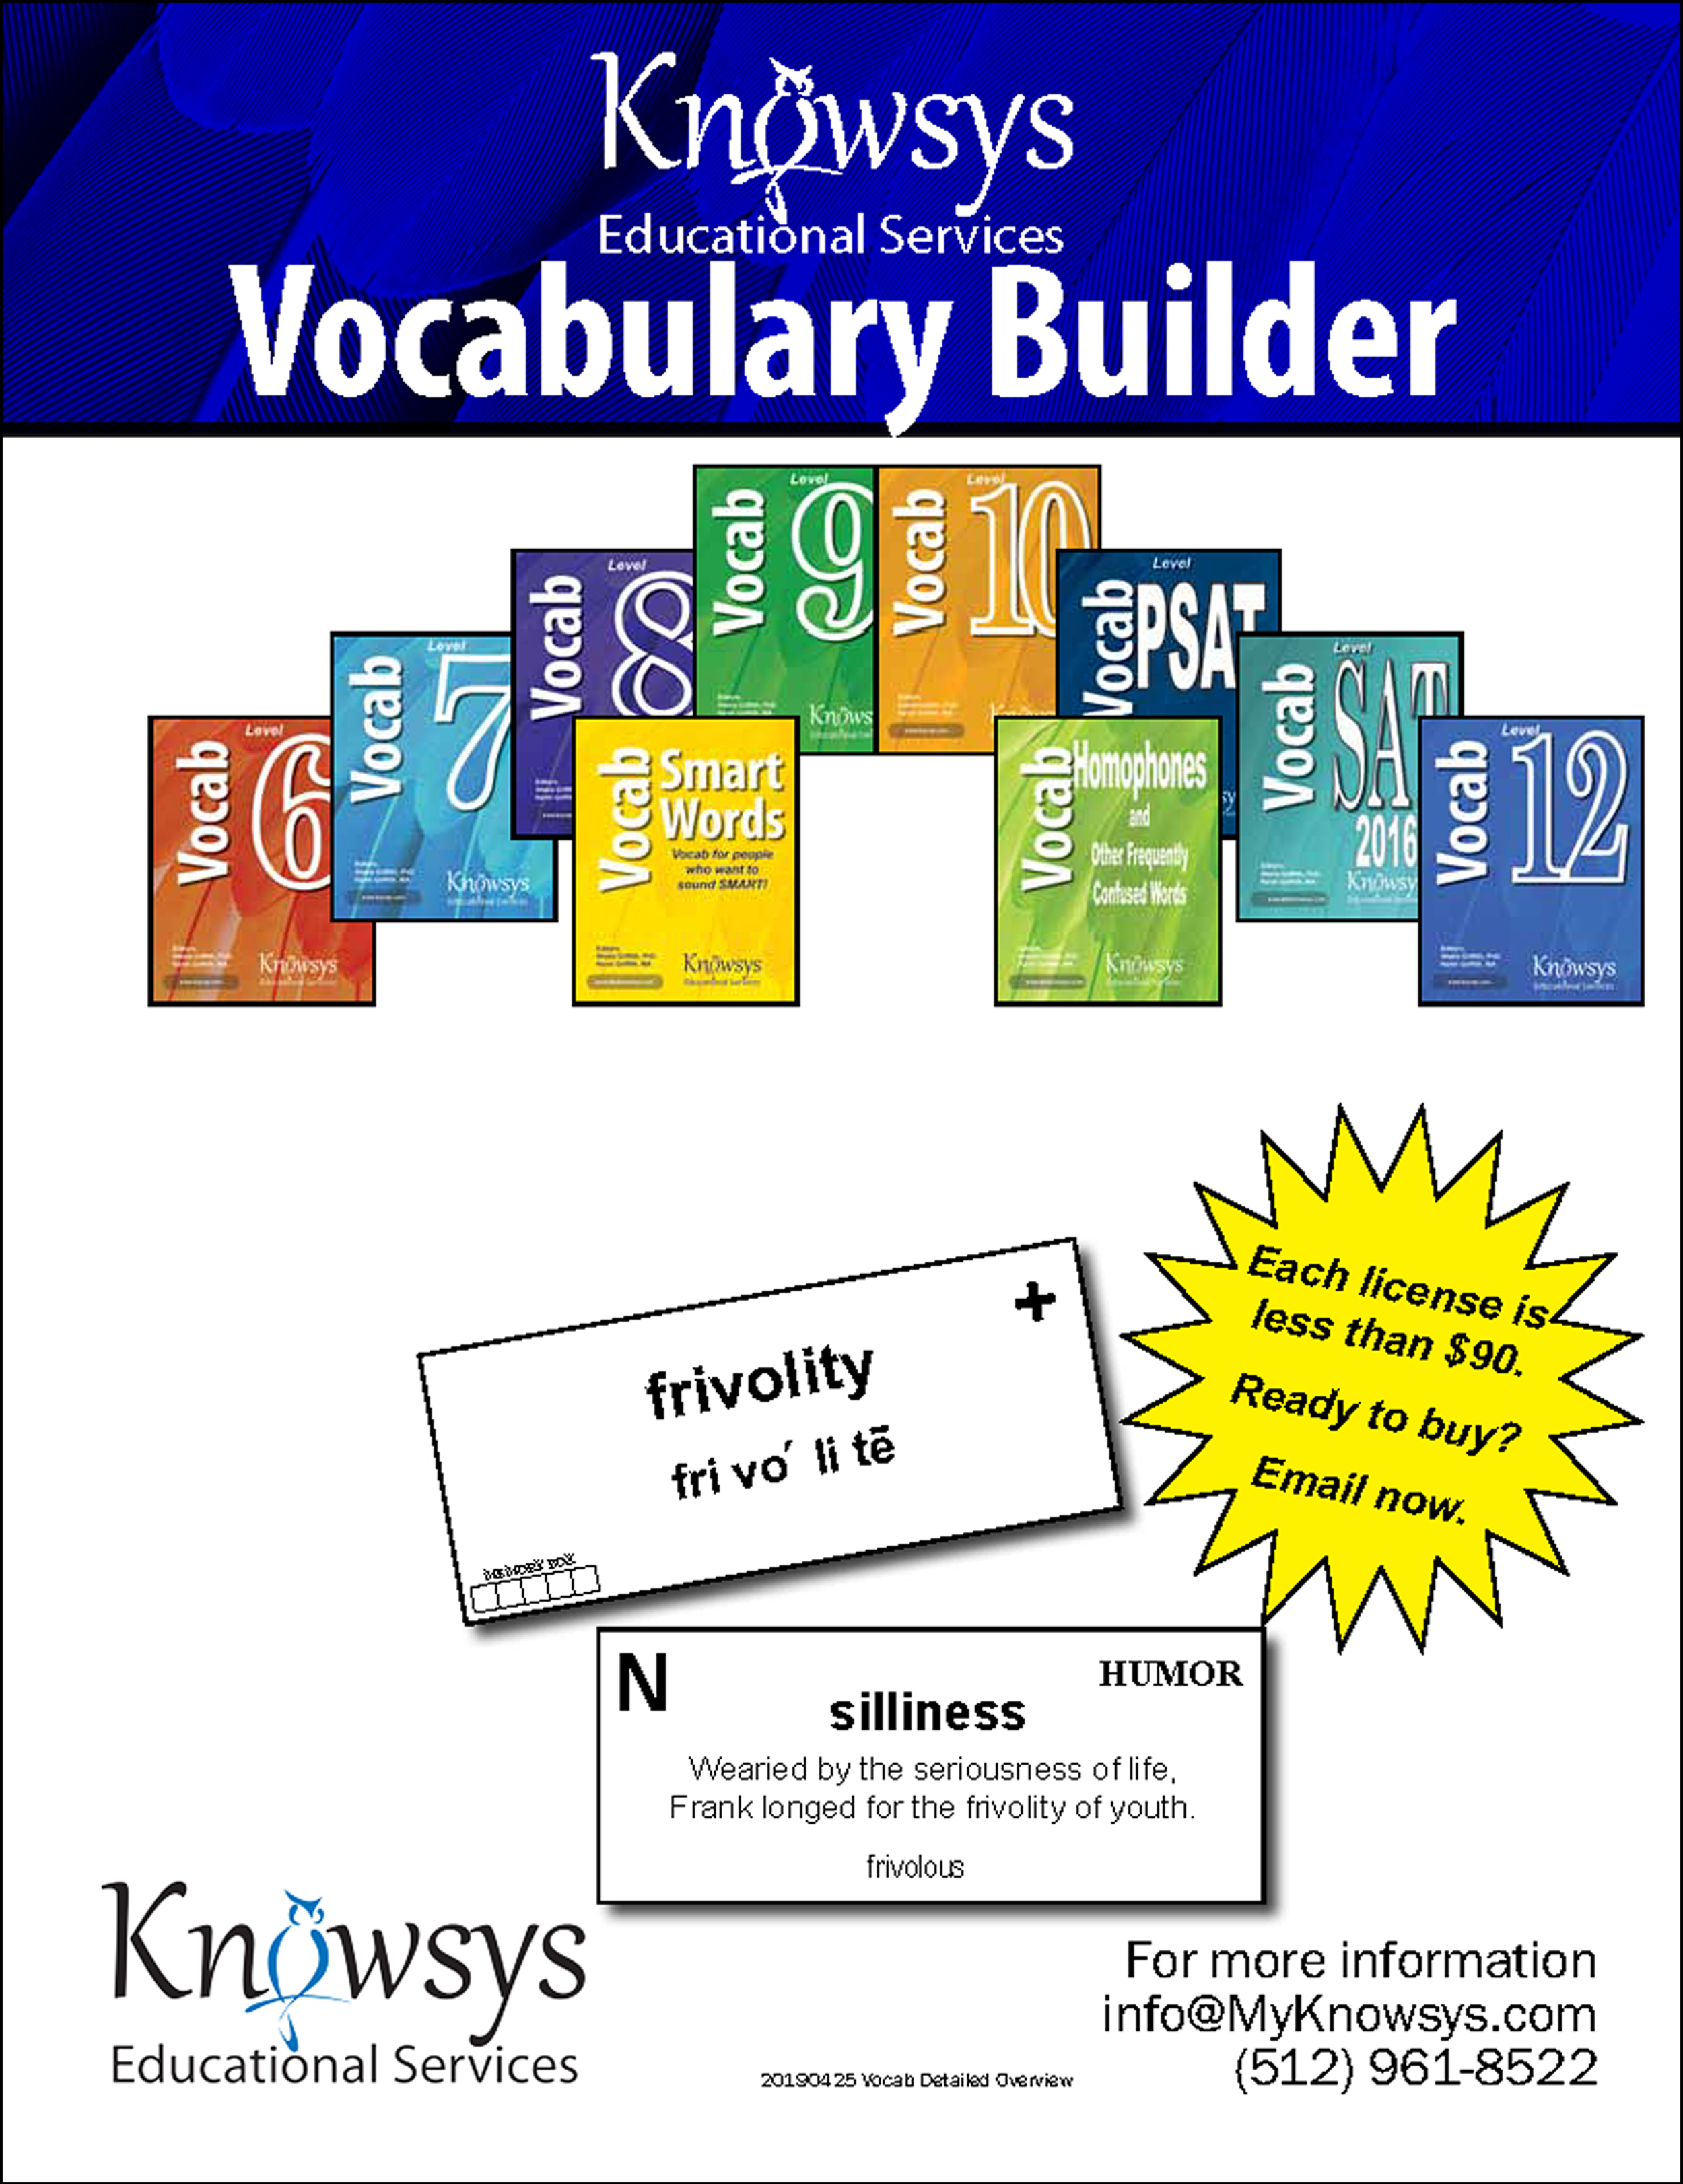 Detailed Overview of the Vocabulary Builder Program